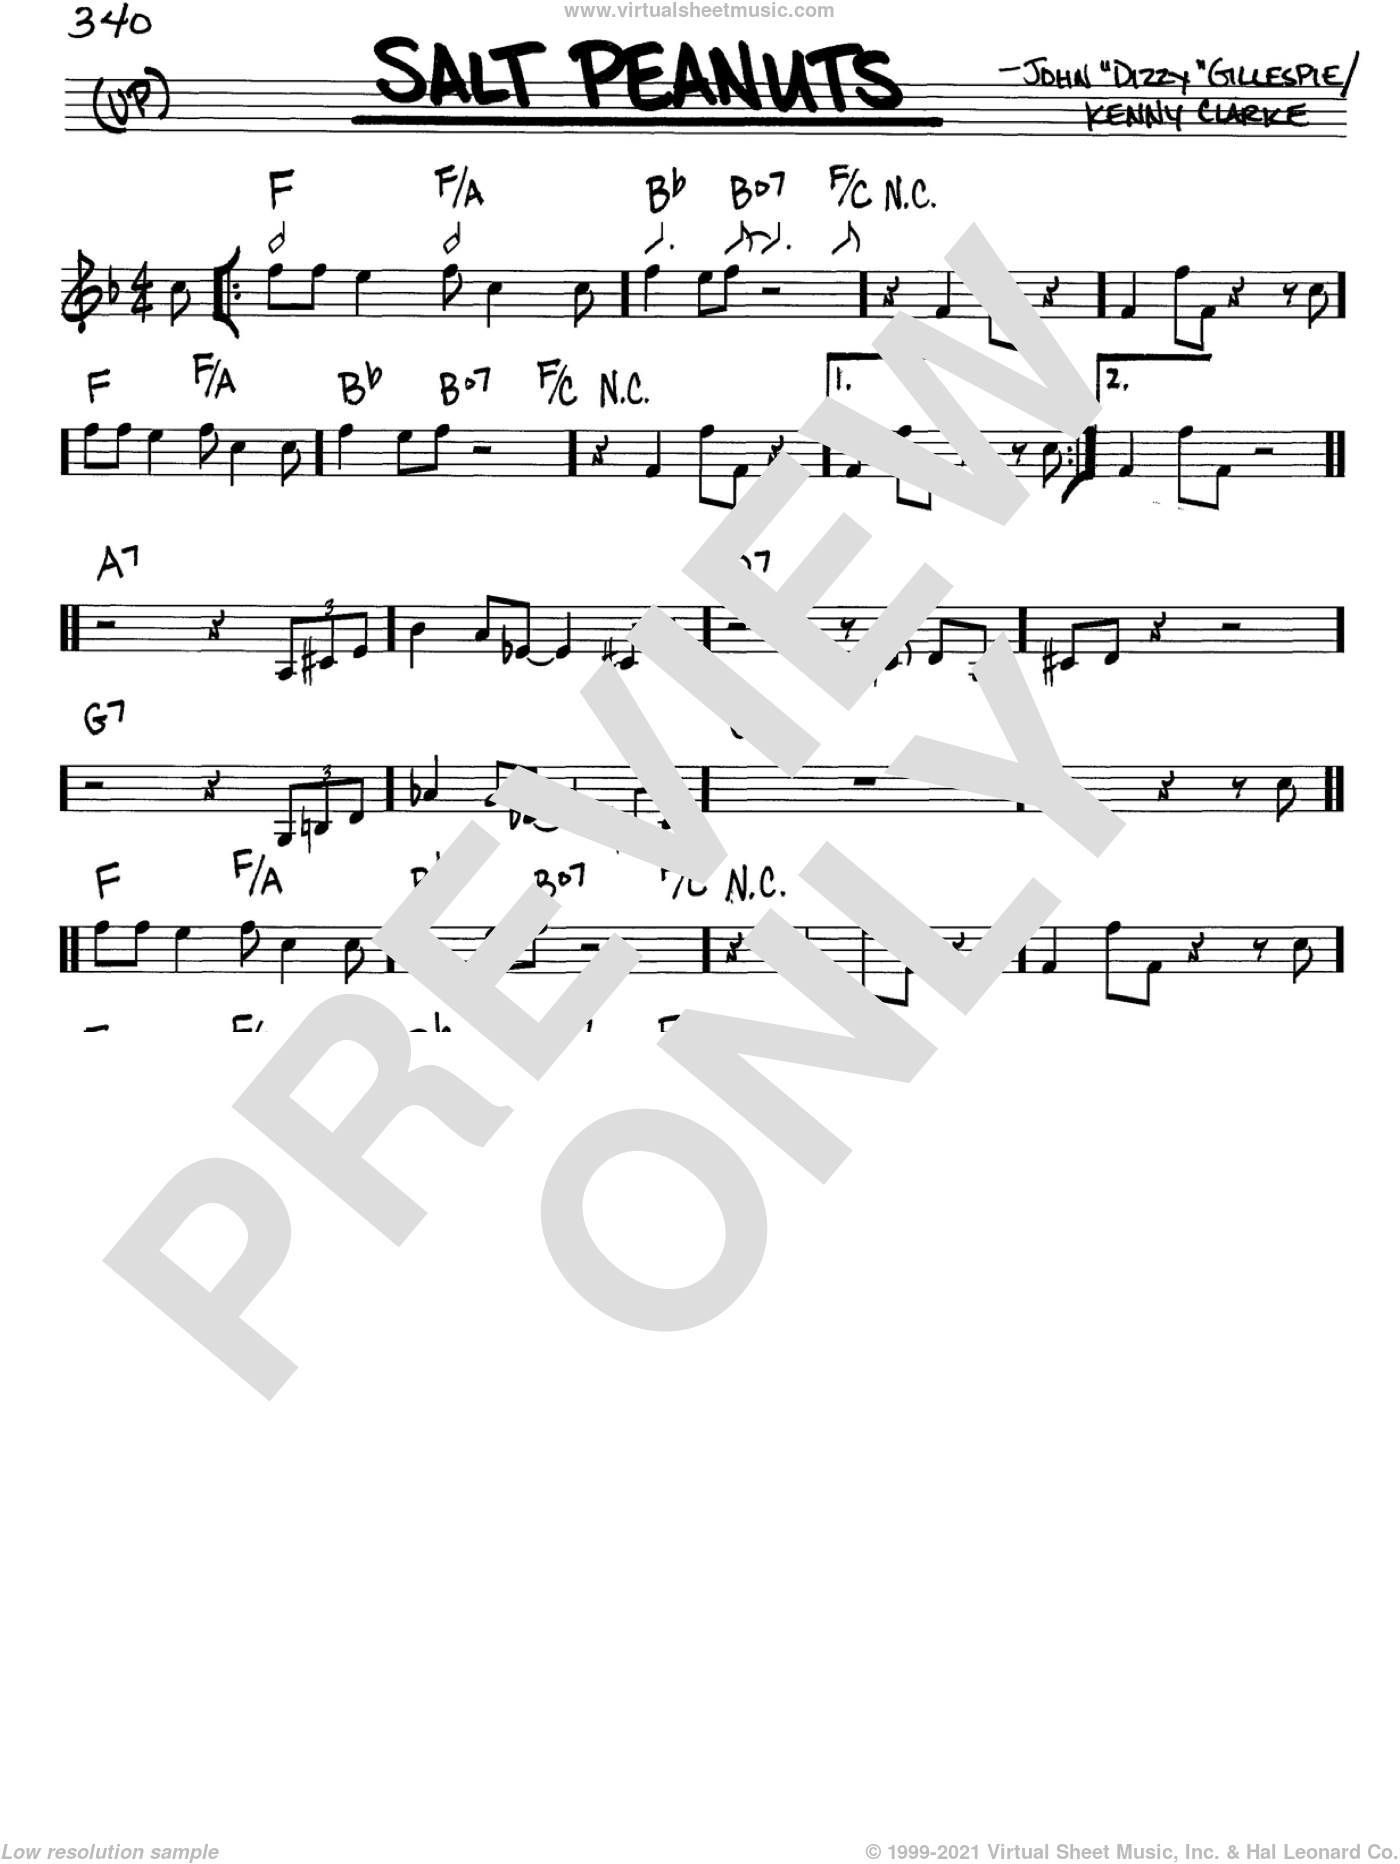 Salt Peanuts sheet music for voice and other instruments (in C) by Dizzy Gillespie and Kenny Clarke, intermediate. Score Image Preview.